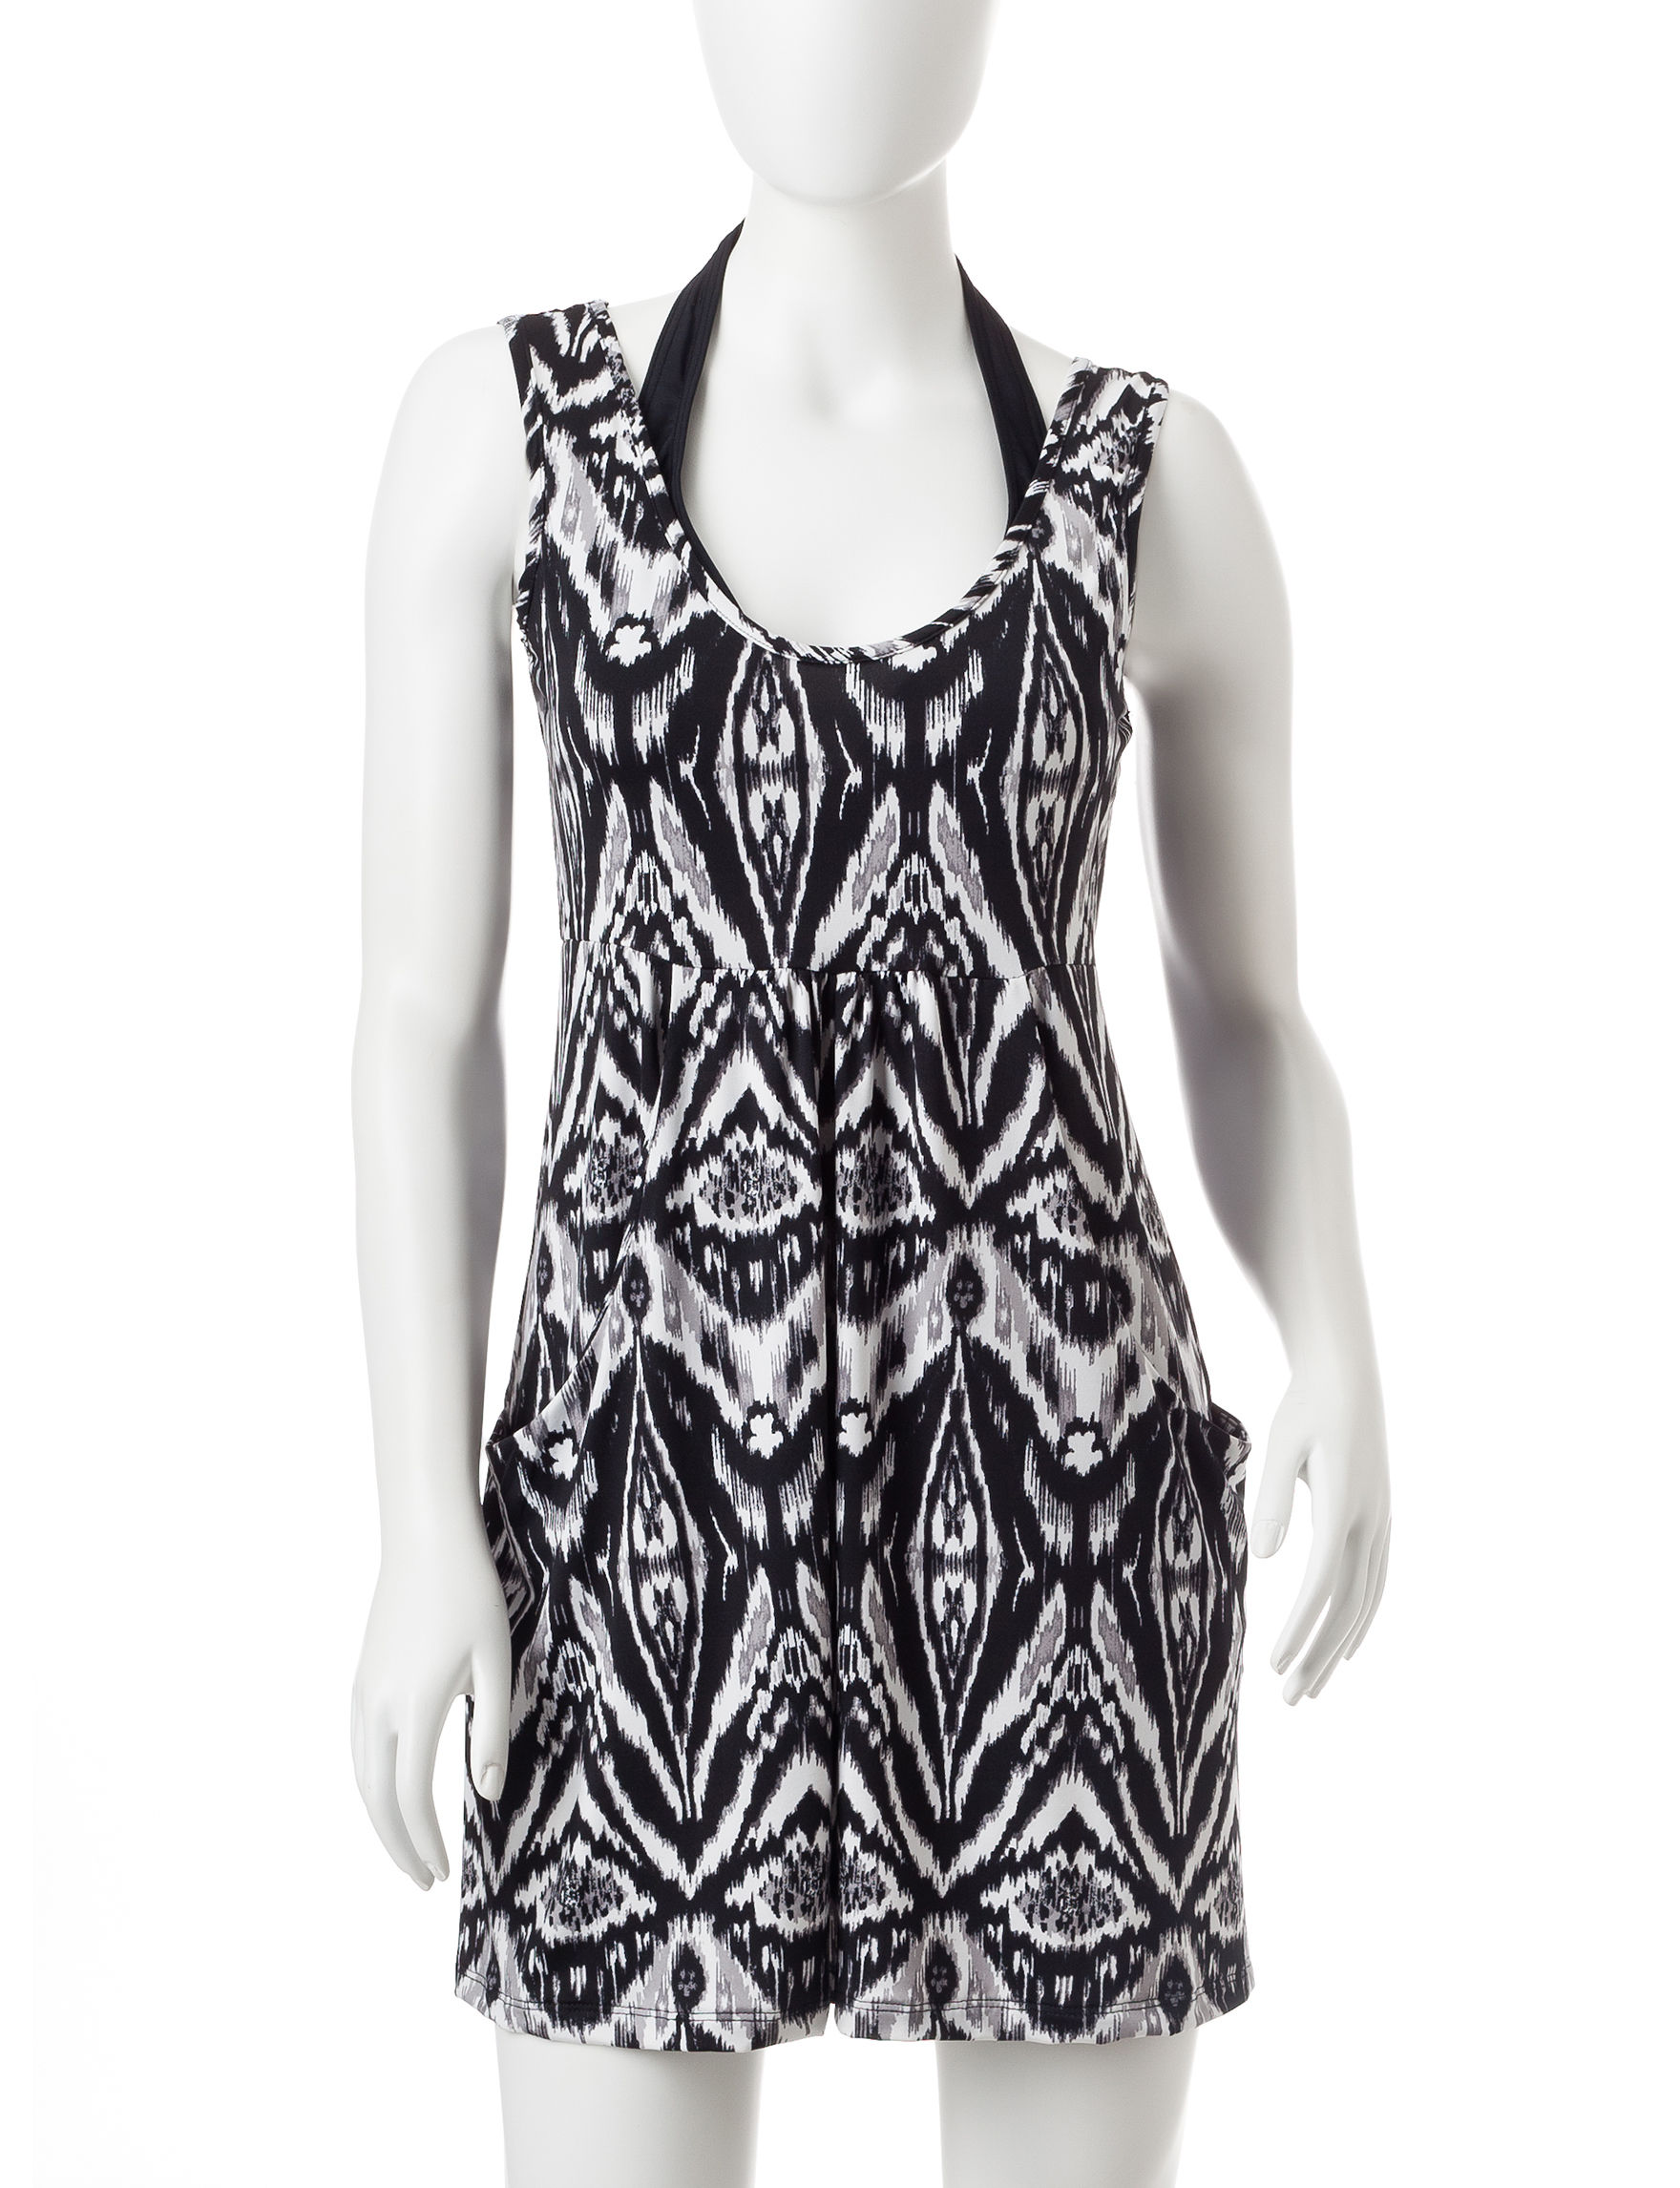 Portocruz Black / White Cover-Ups